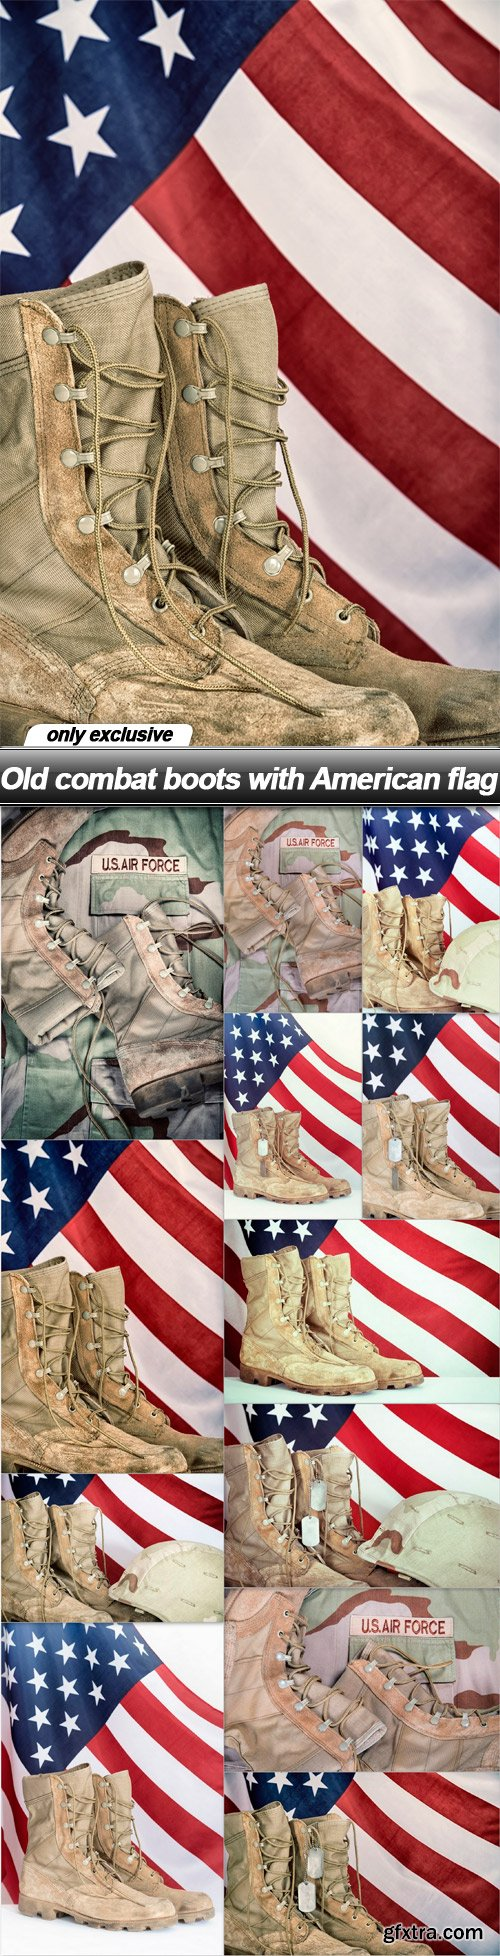 Old combat boots with American flag - 12 UHQ JPEG